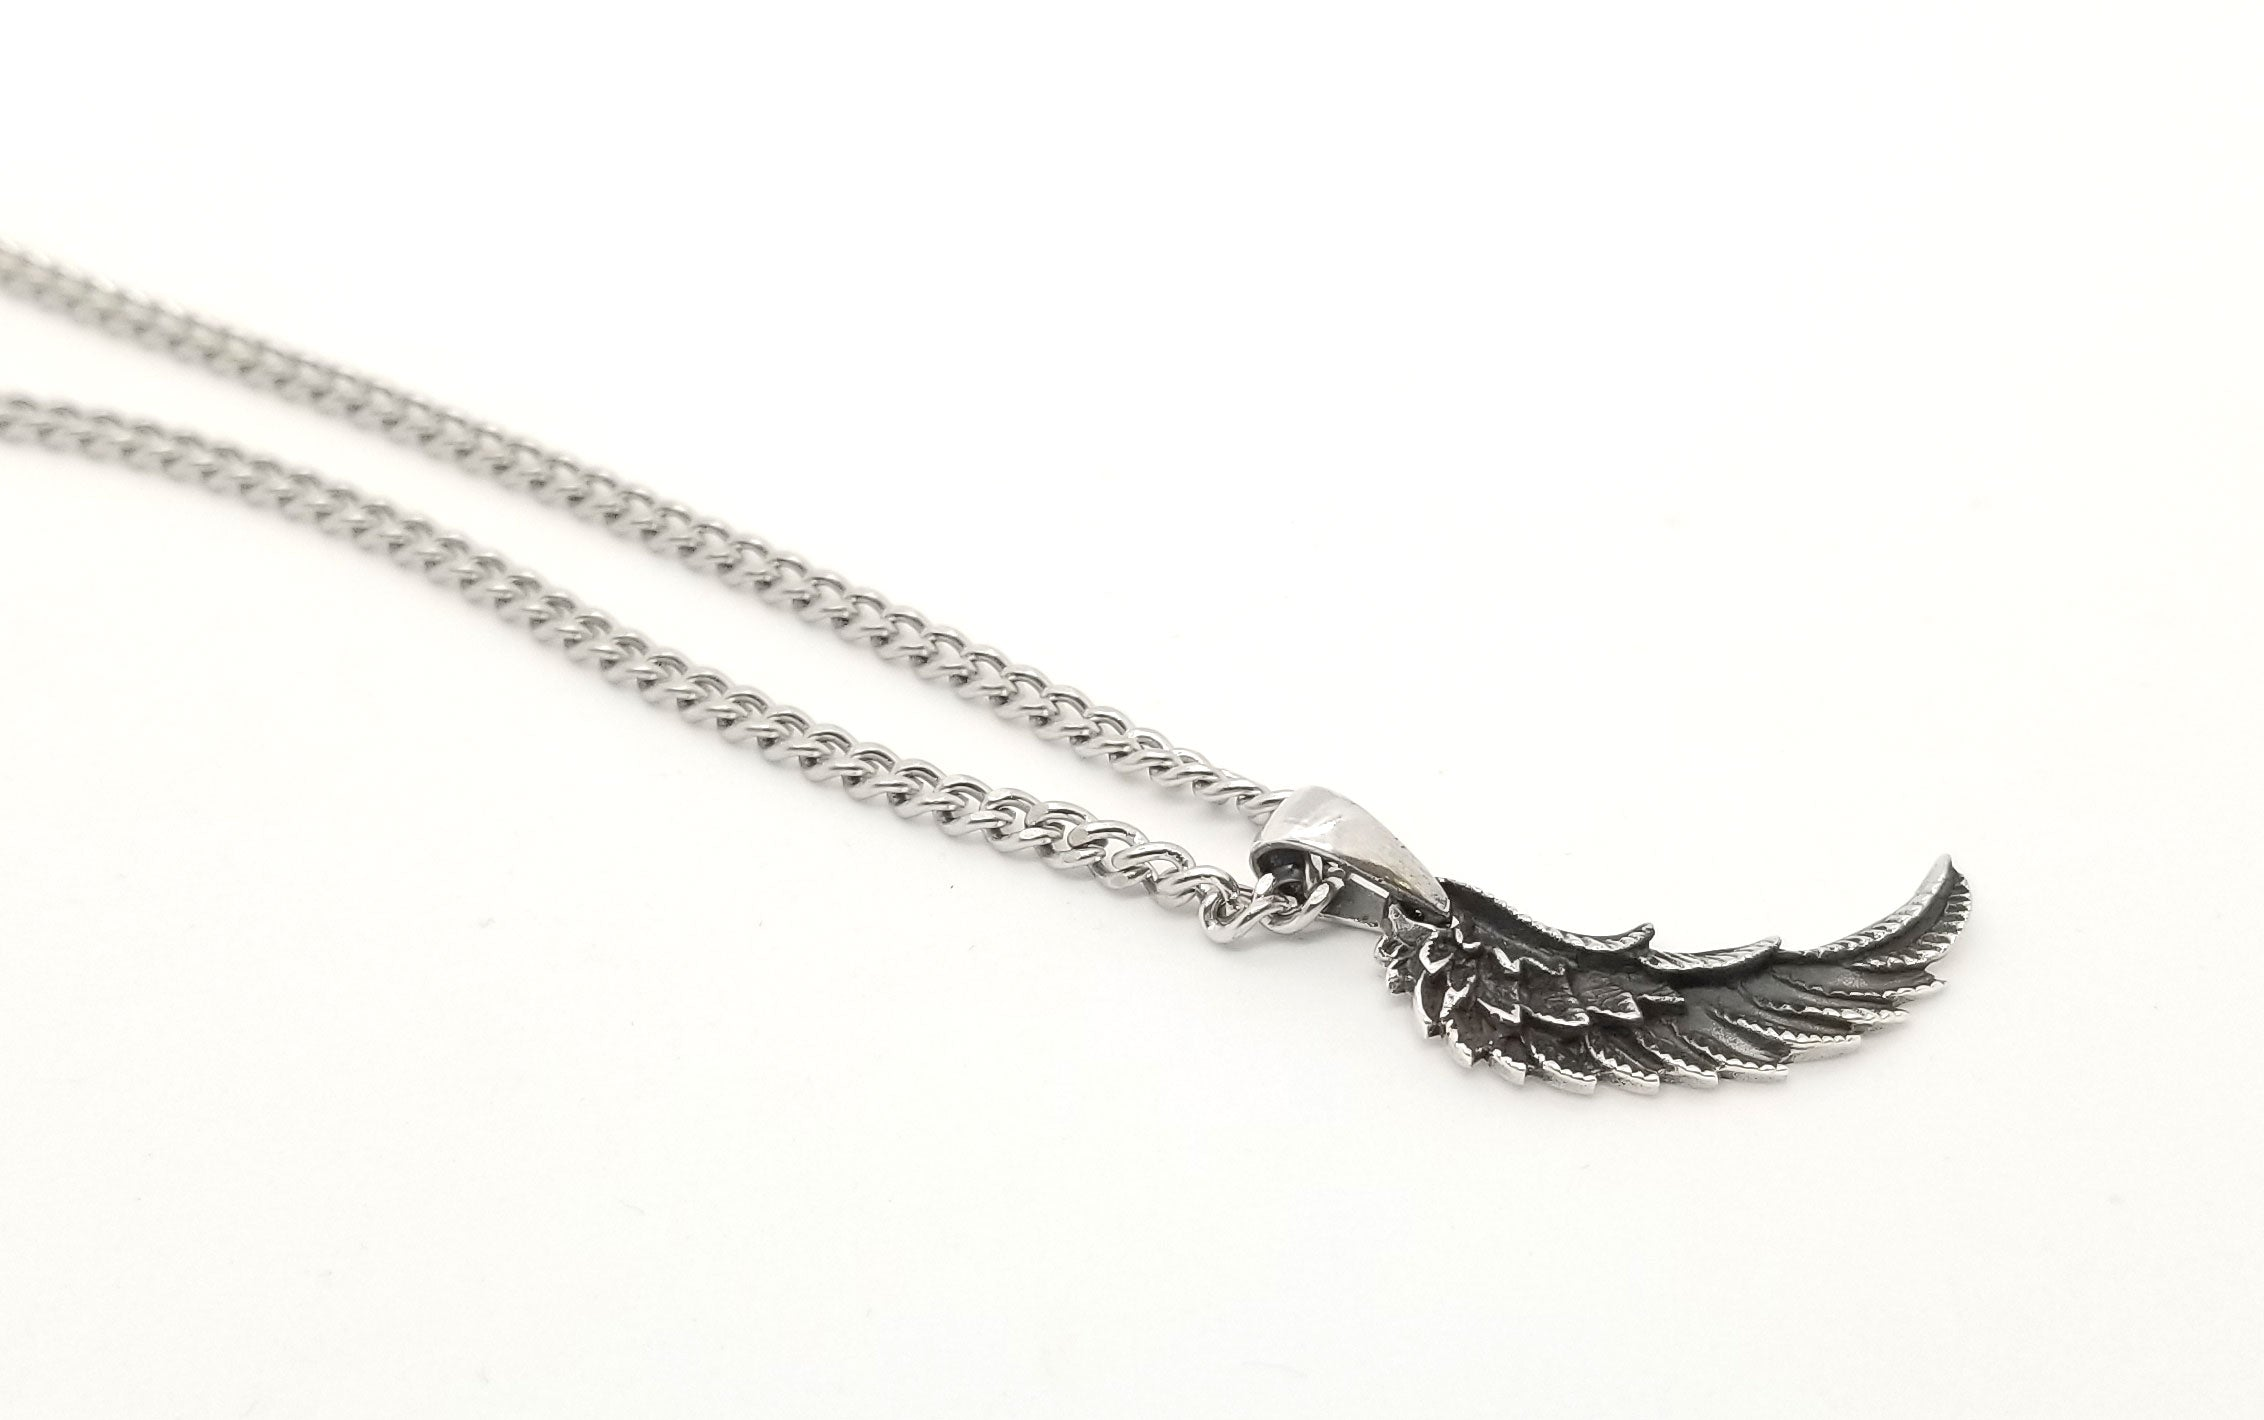 Darkwing Necklace